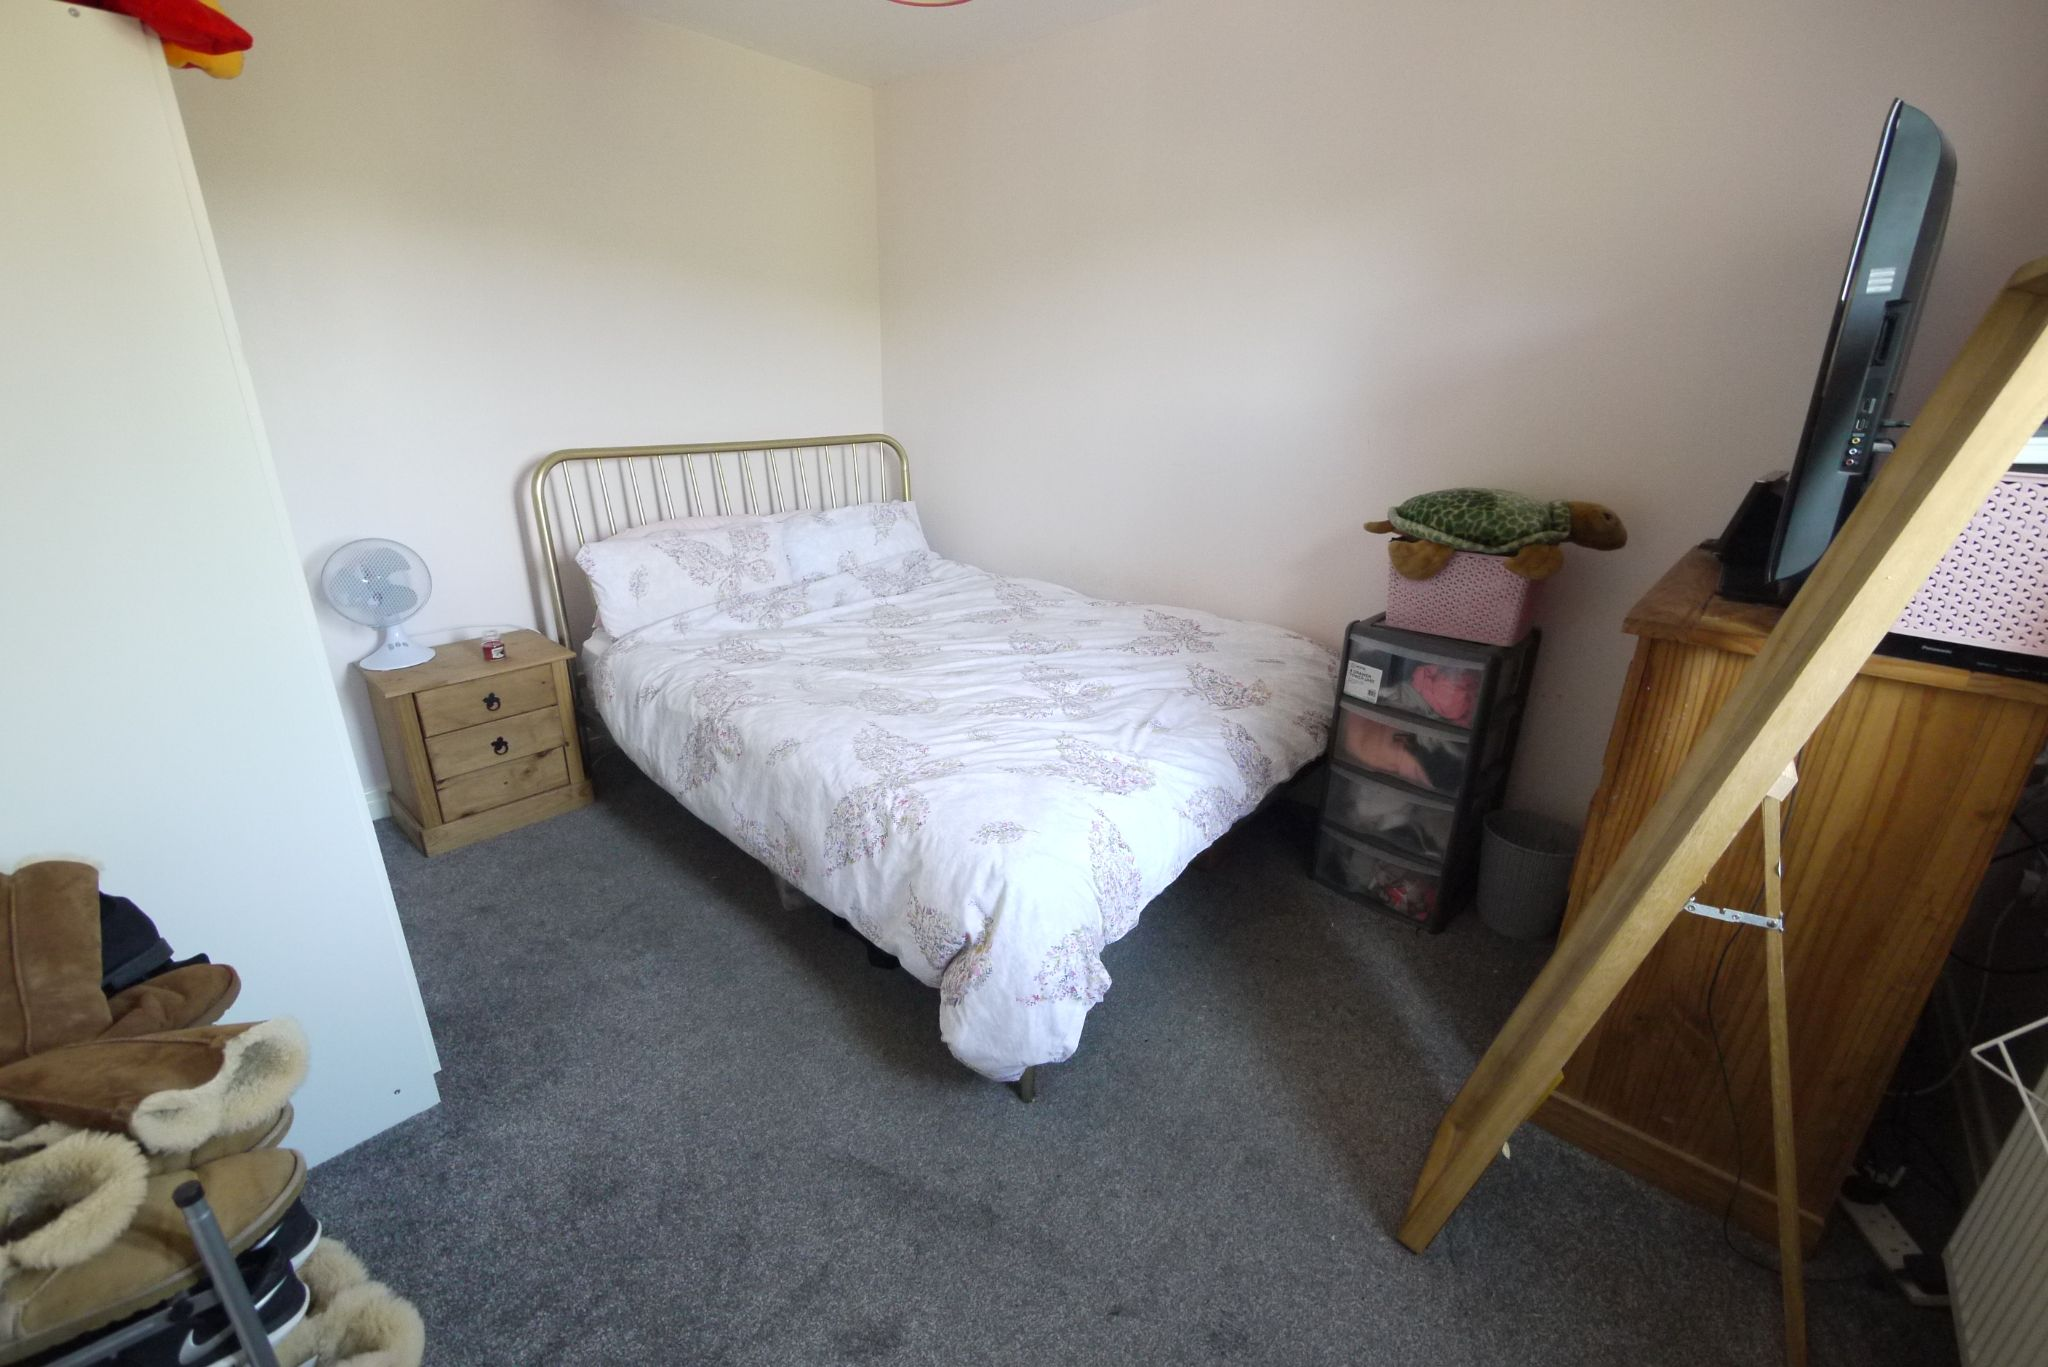 5 bedroom detached house For Sale in Brighouse - Photograph 12.